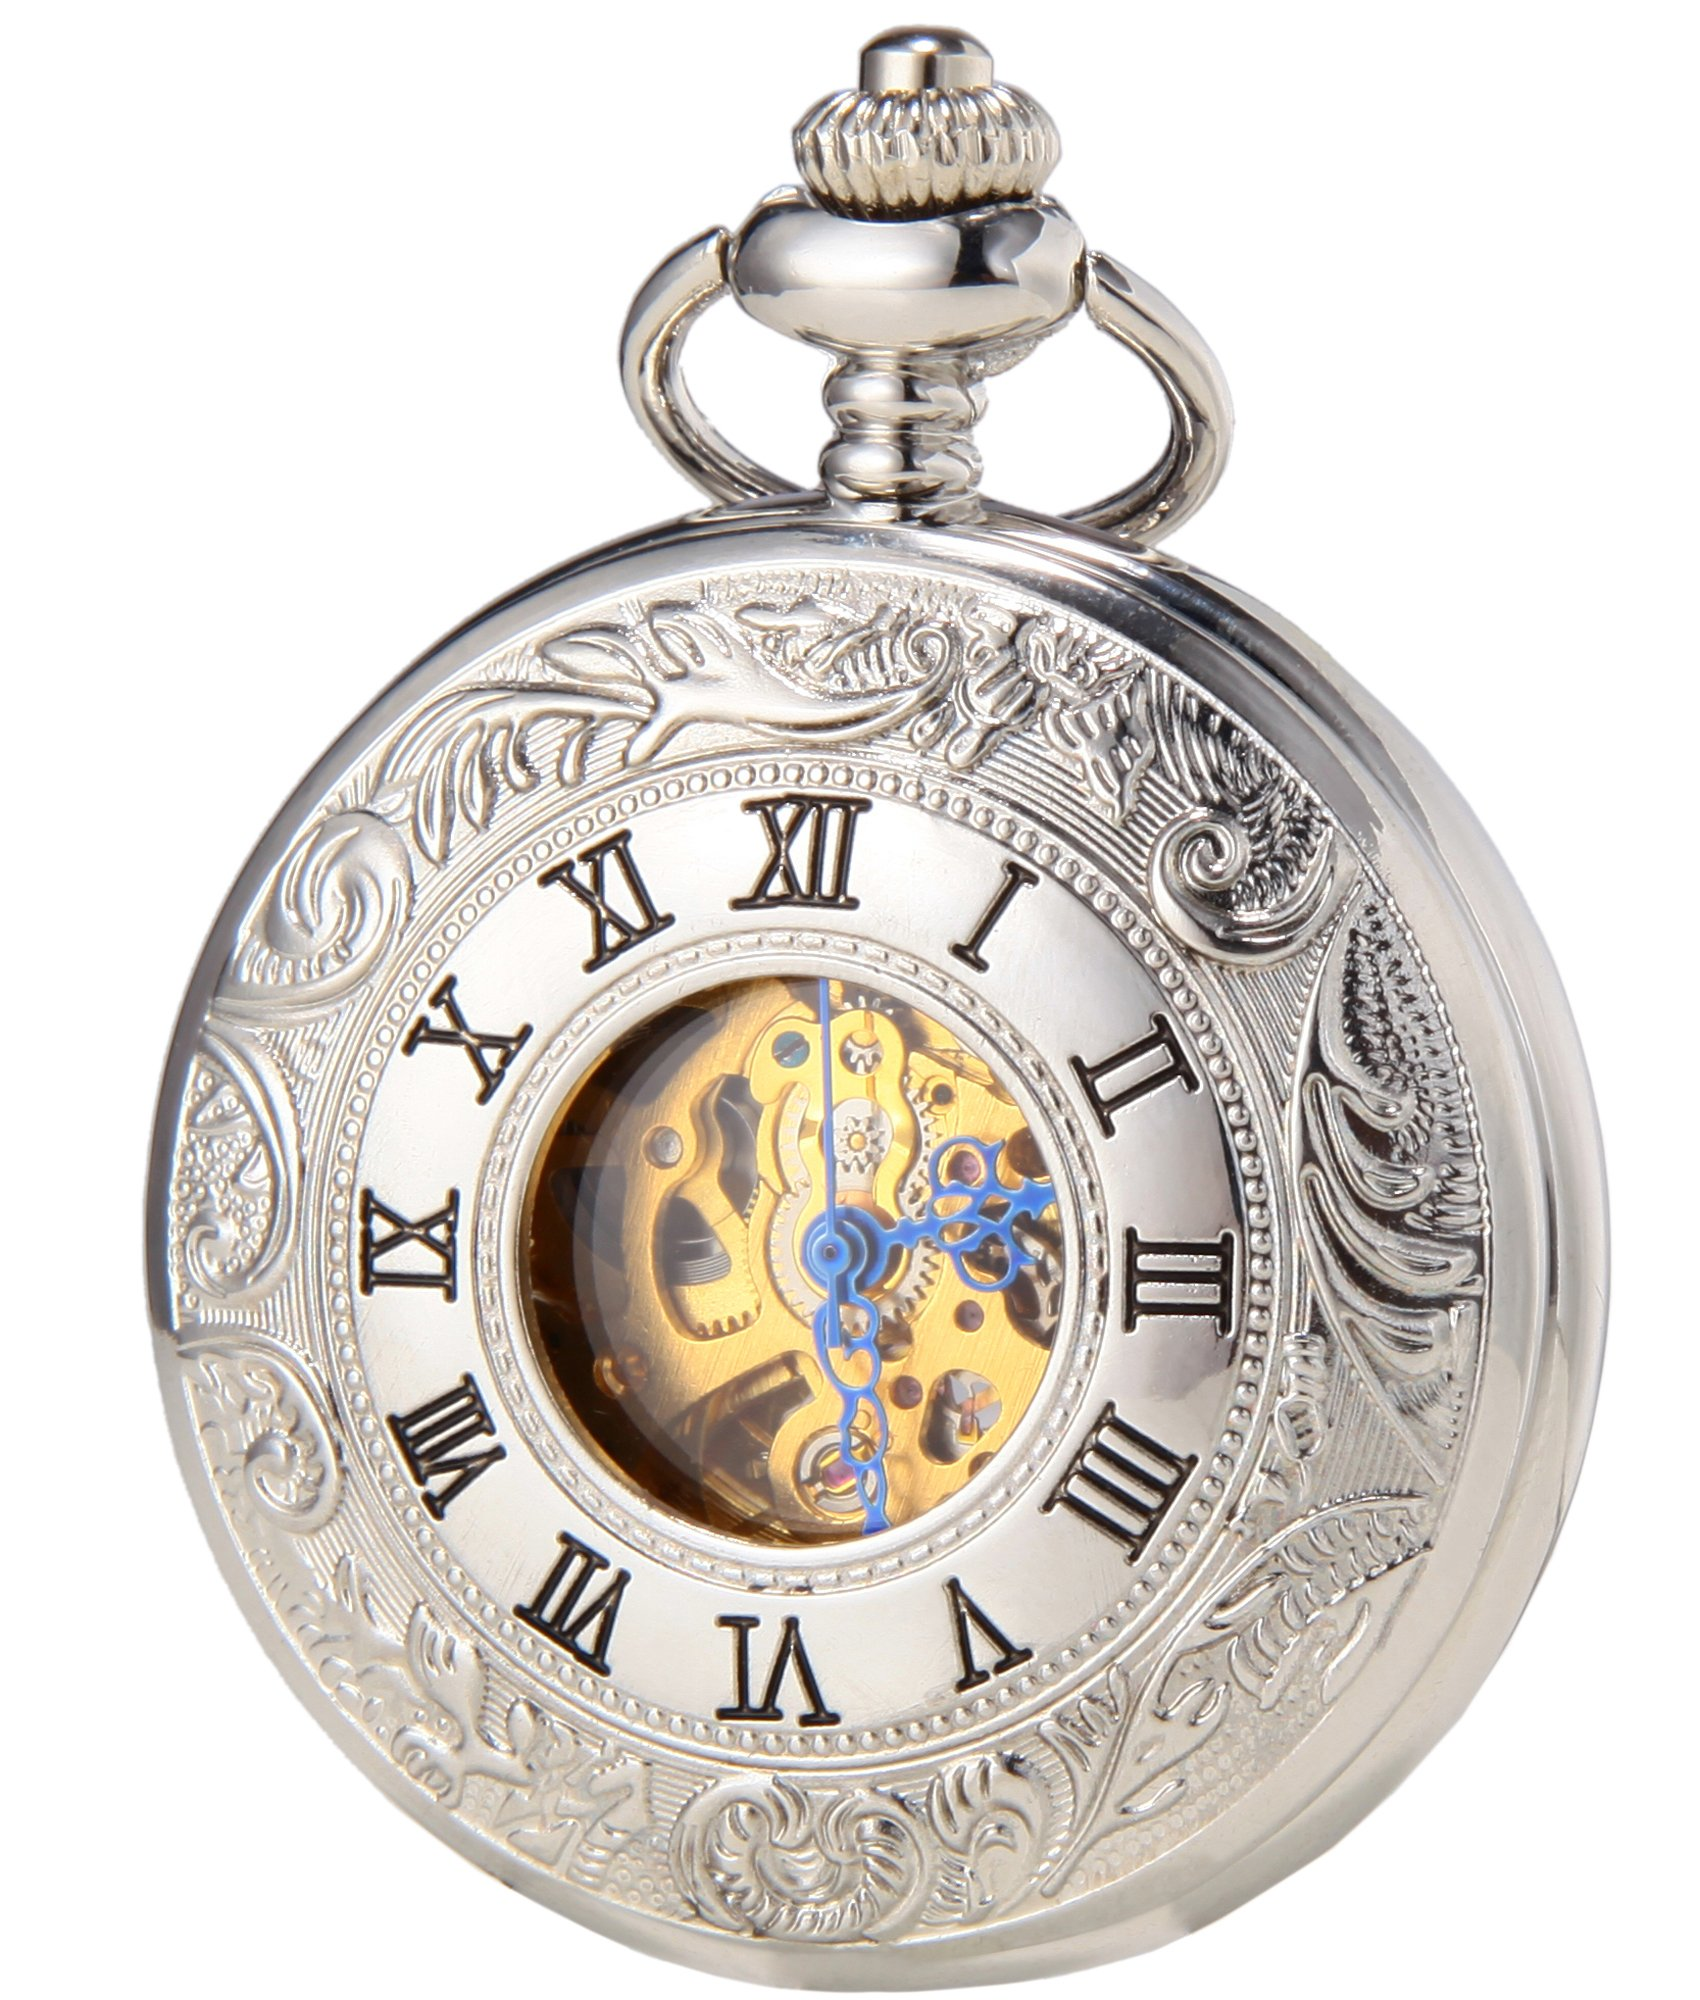 SEWOR Vintage Hollow Pocket Watch Automatic Mechanical Self Wind & Luxury Leather Gift Box (Sliver) by SEWOR